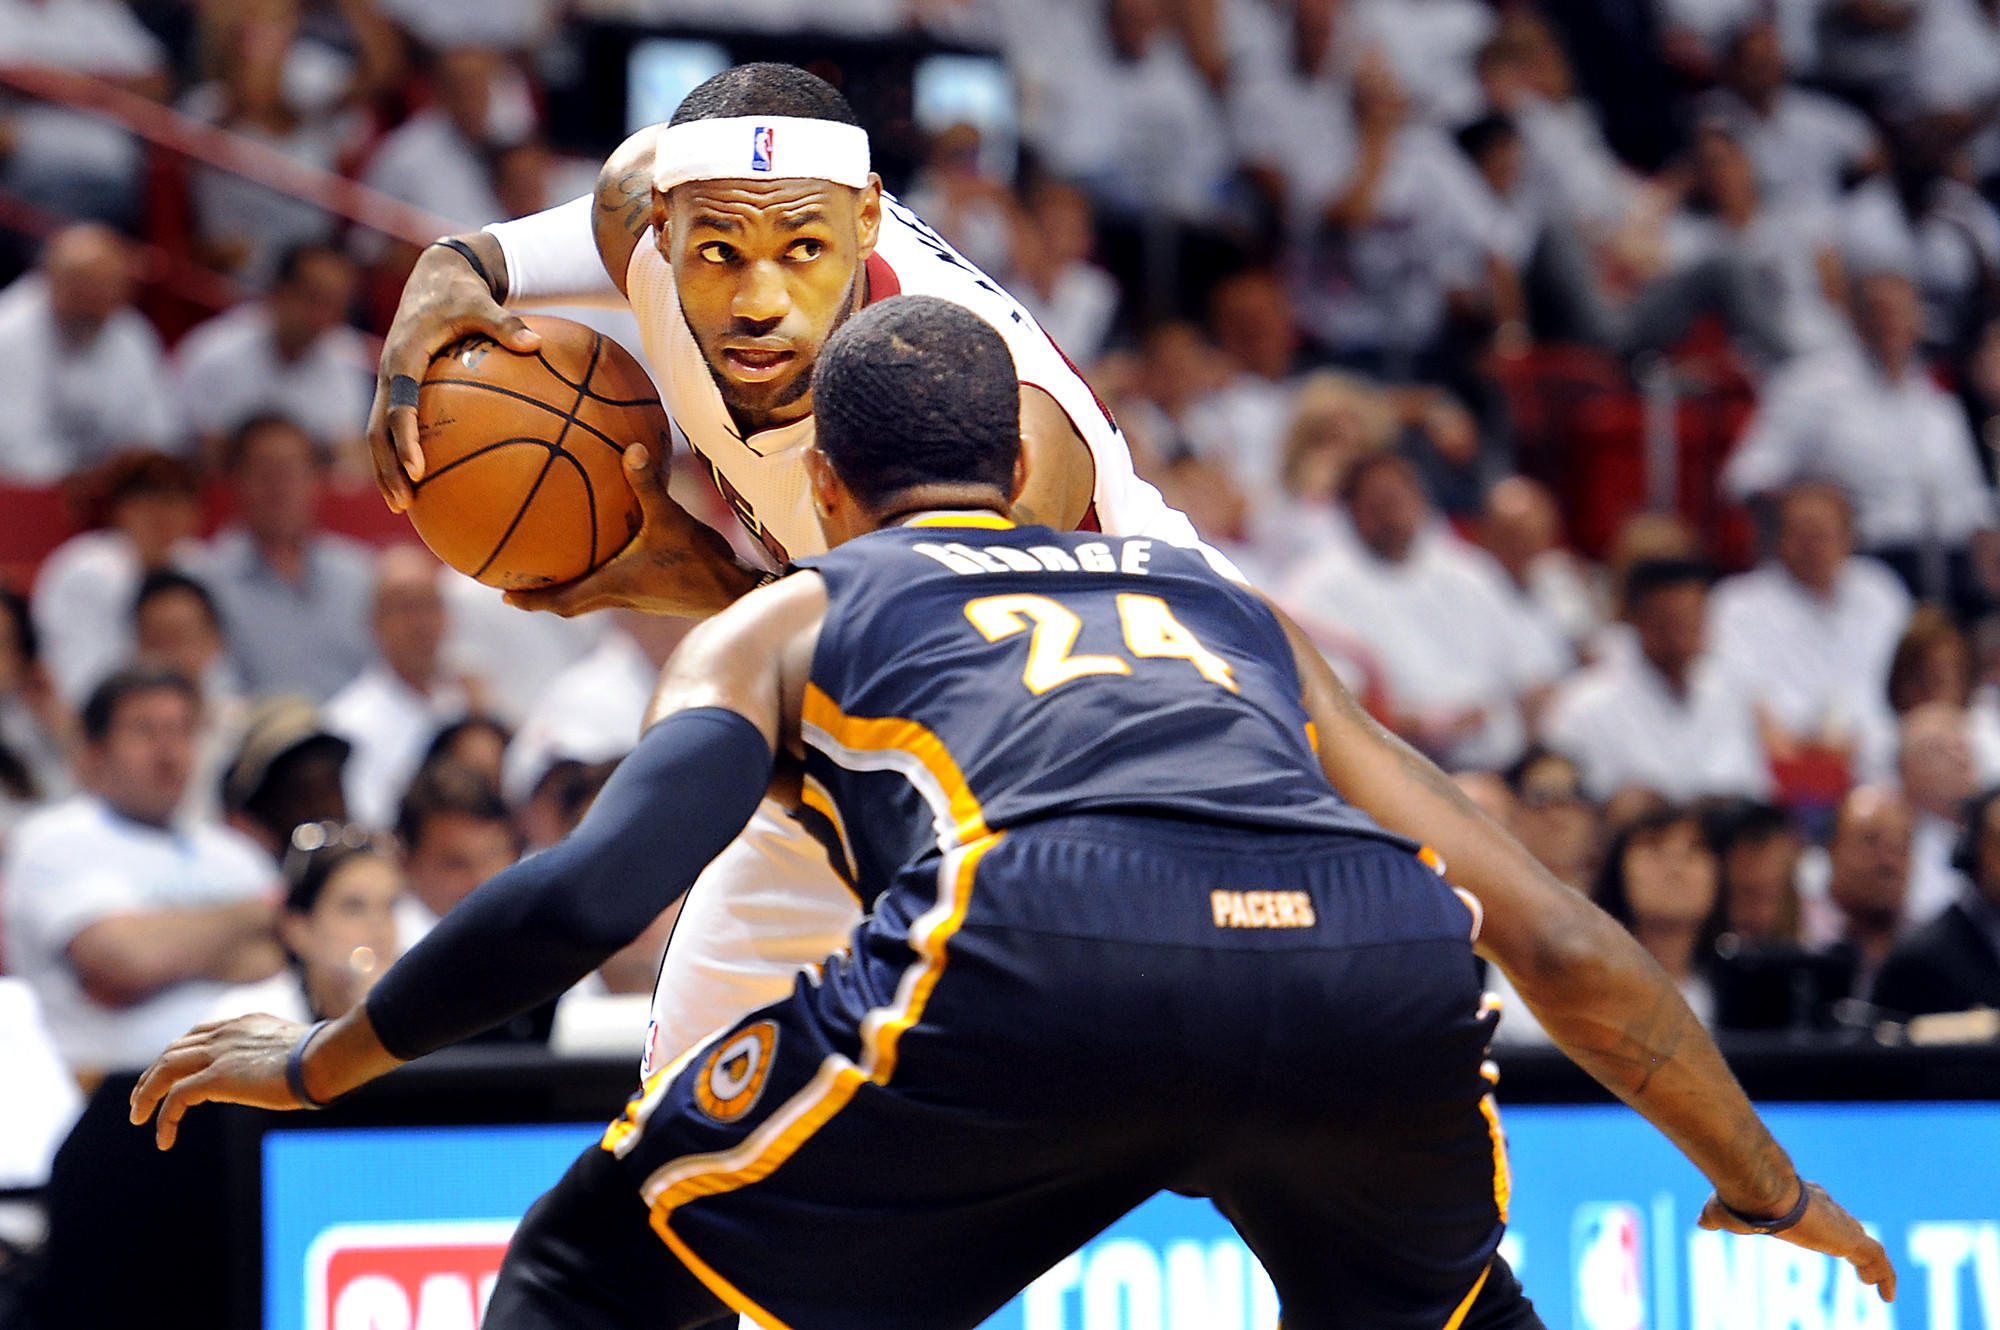 -The Miami Heat host the Indiana Pacers at American Airlines Arena for Game 4 of the Eastern Conference Finals. LeBron James prepares to take on Indiana's Paul George in a one on one.